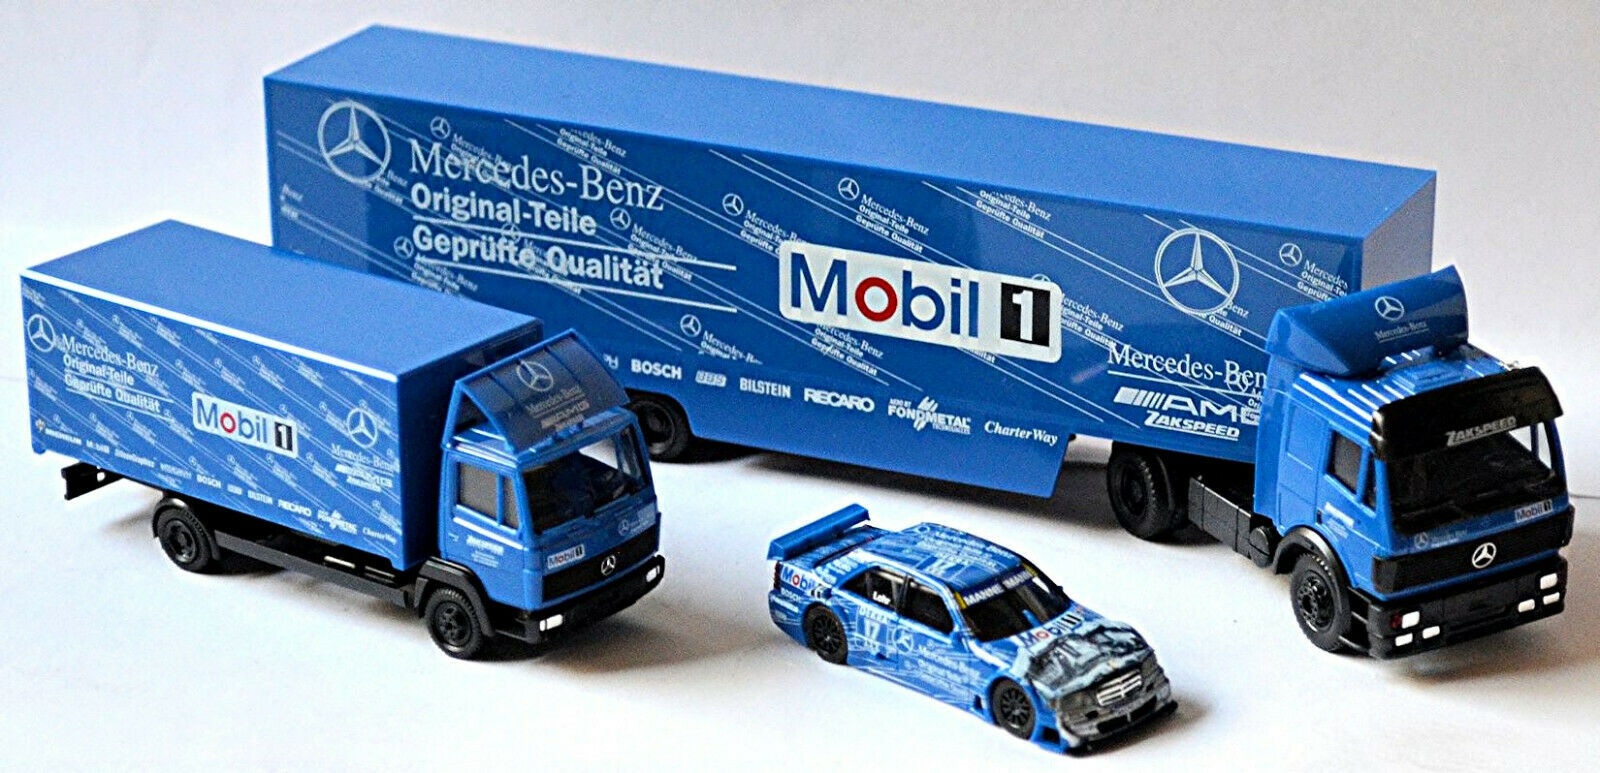 Mercedes Benz Set DTM ´95 Original Piezas Zakspeed Racing E. Lohr 1 87